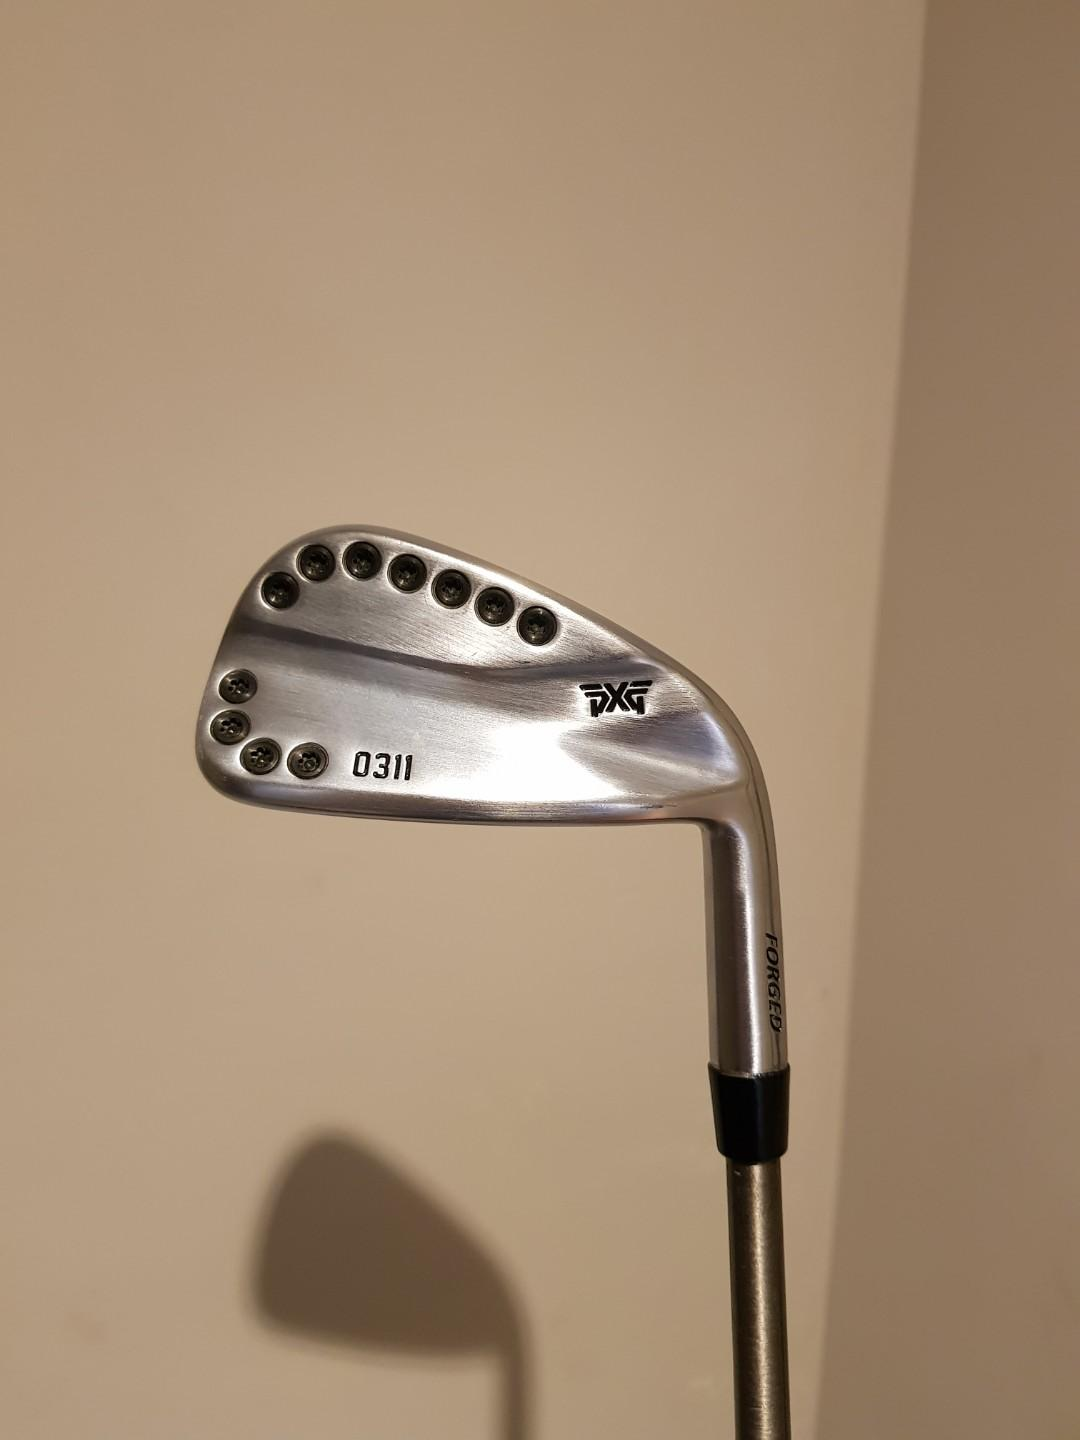 PXG 0311 golf iron  7  plus Steelfiber shaft